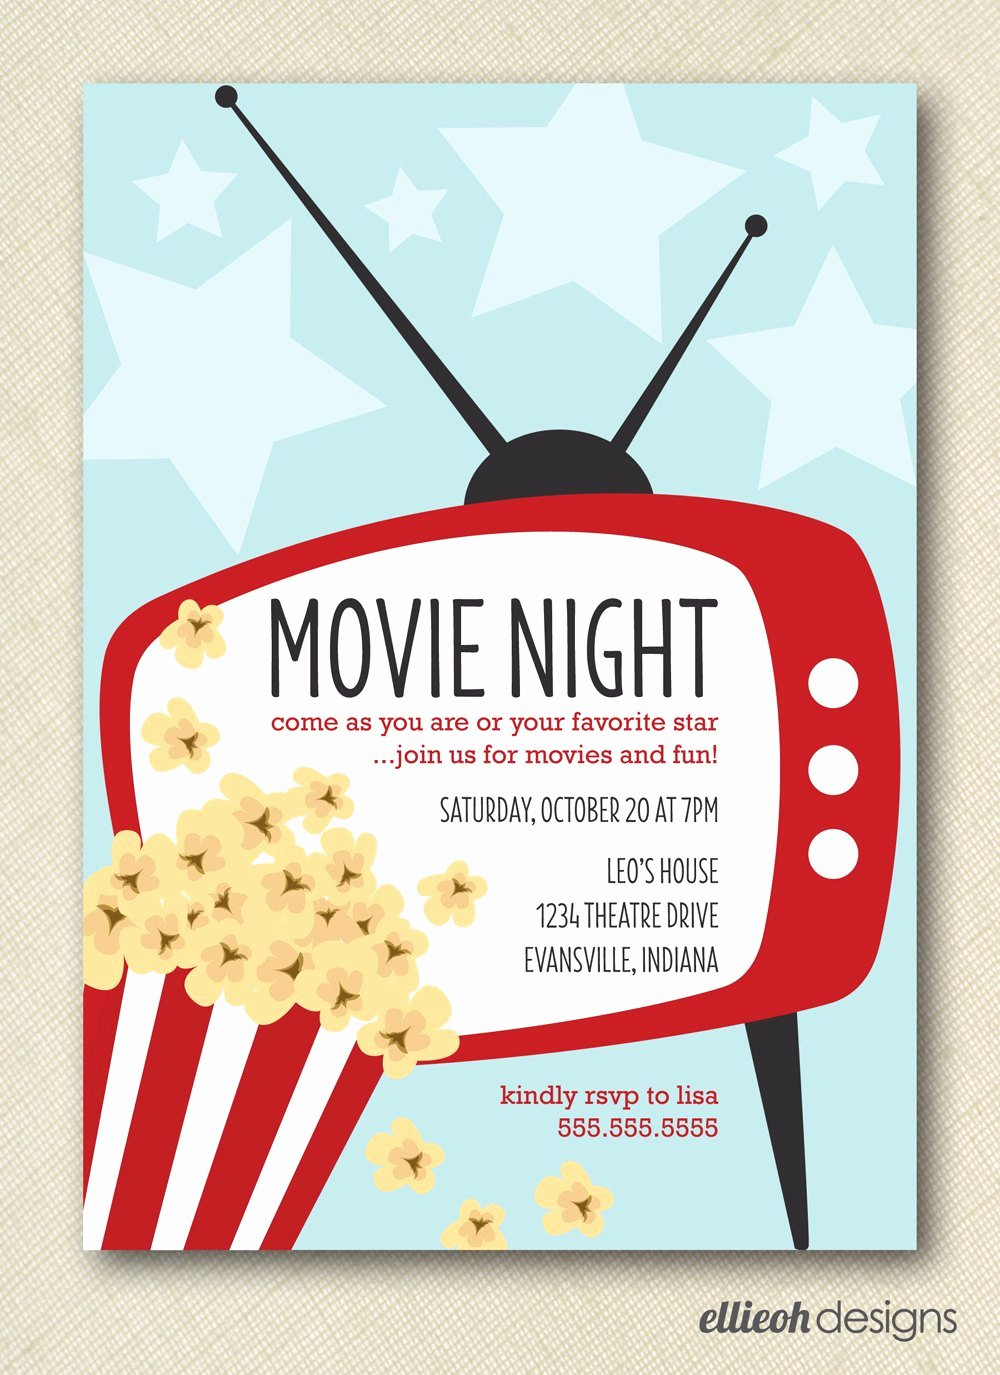 Movie Night Invitation Template Lovely Movie Night Invite Printable Digital File Diy by